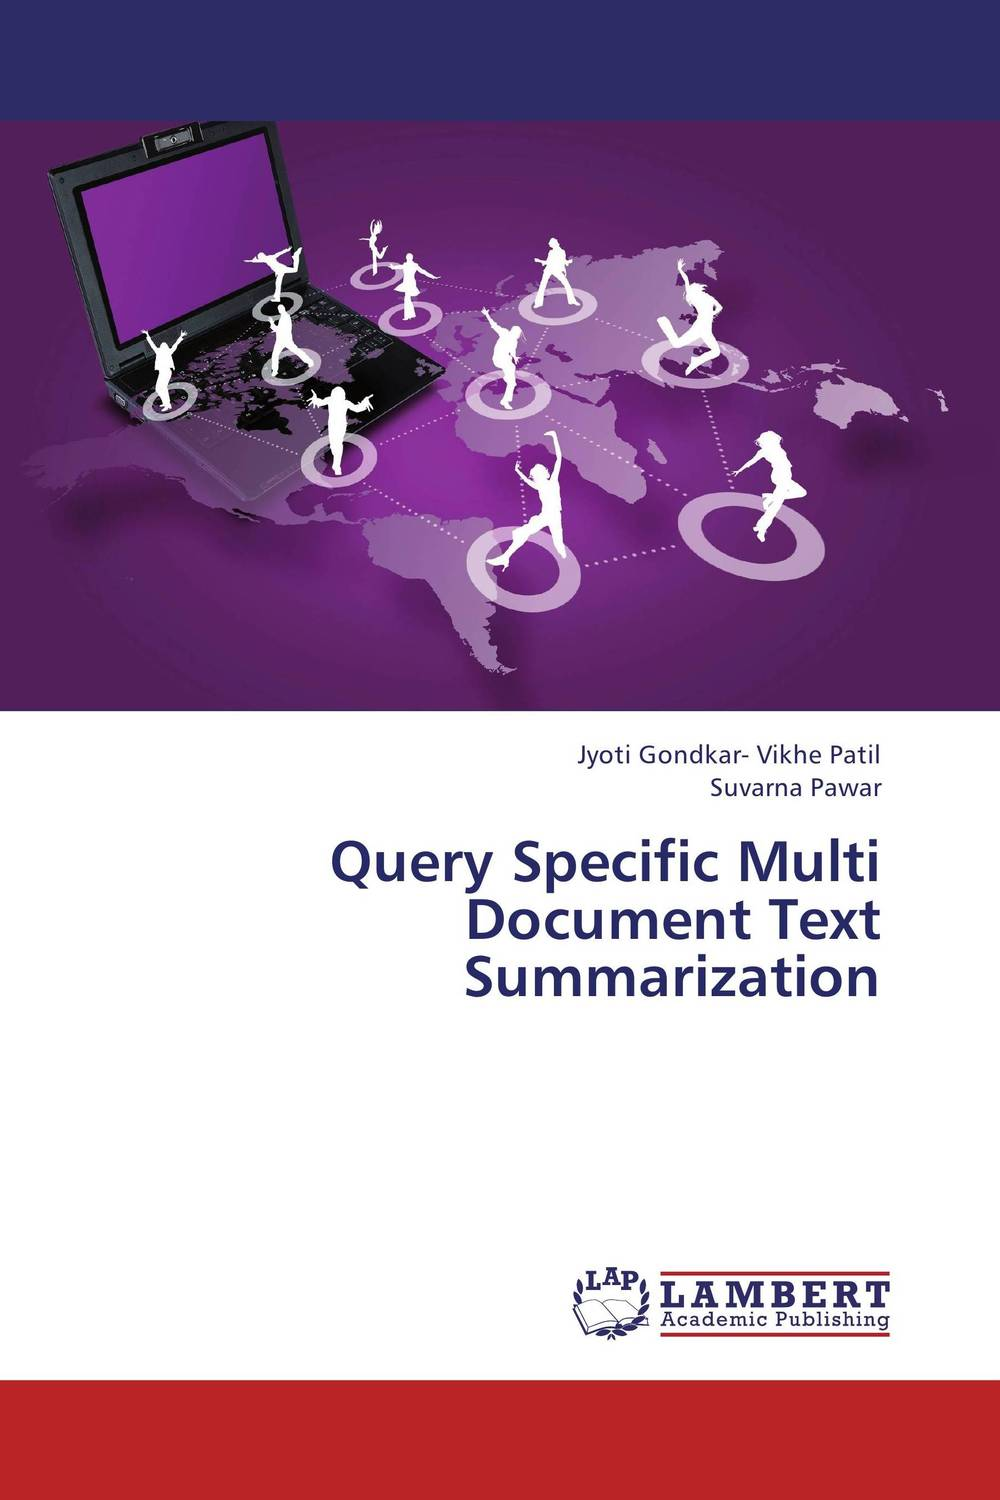 Query Specific Multi Document Text Summarization automatic text summarization by extracting significant sentences